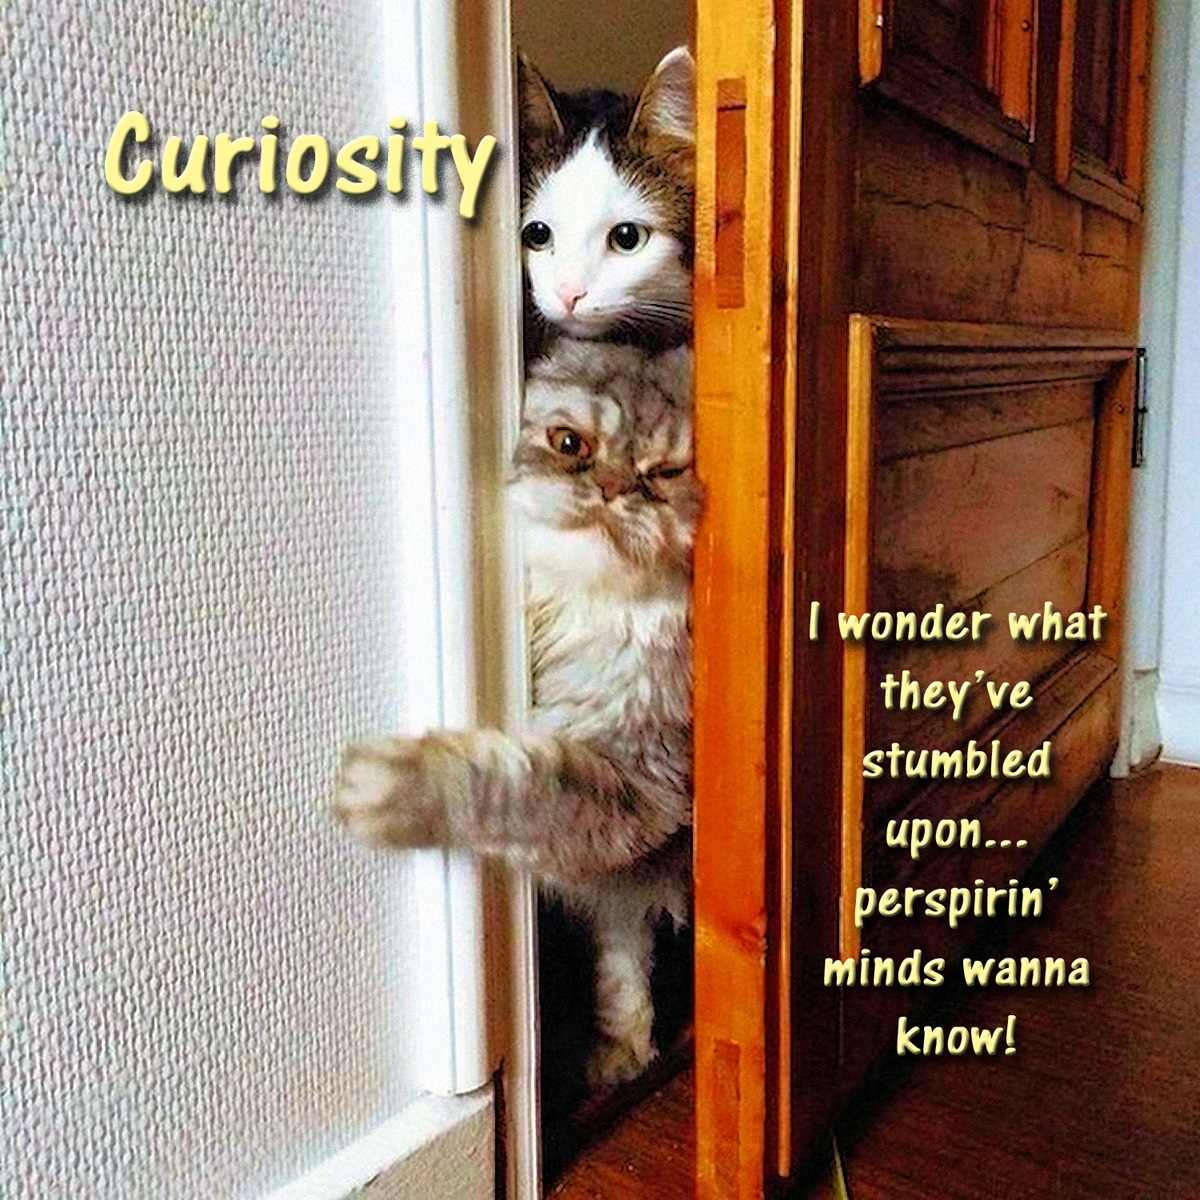 00 cats curiousity 020916